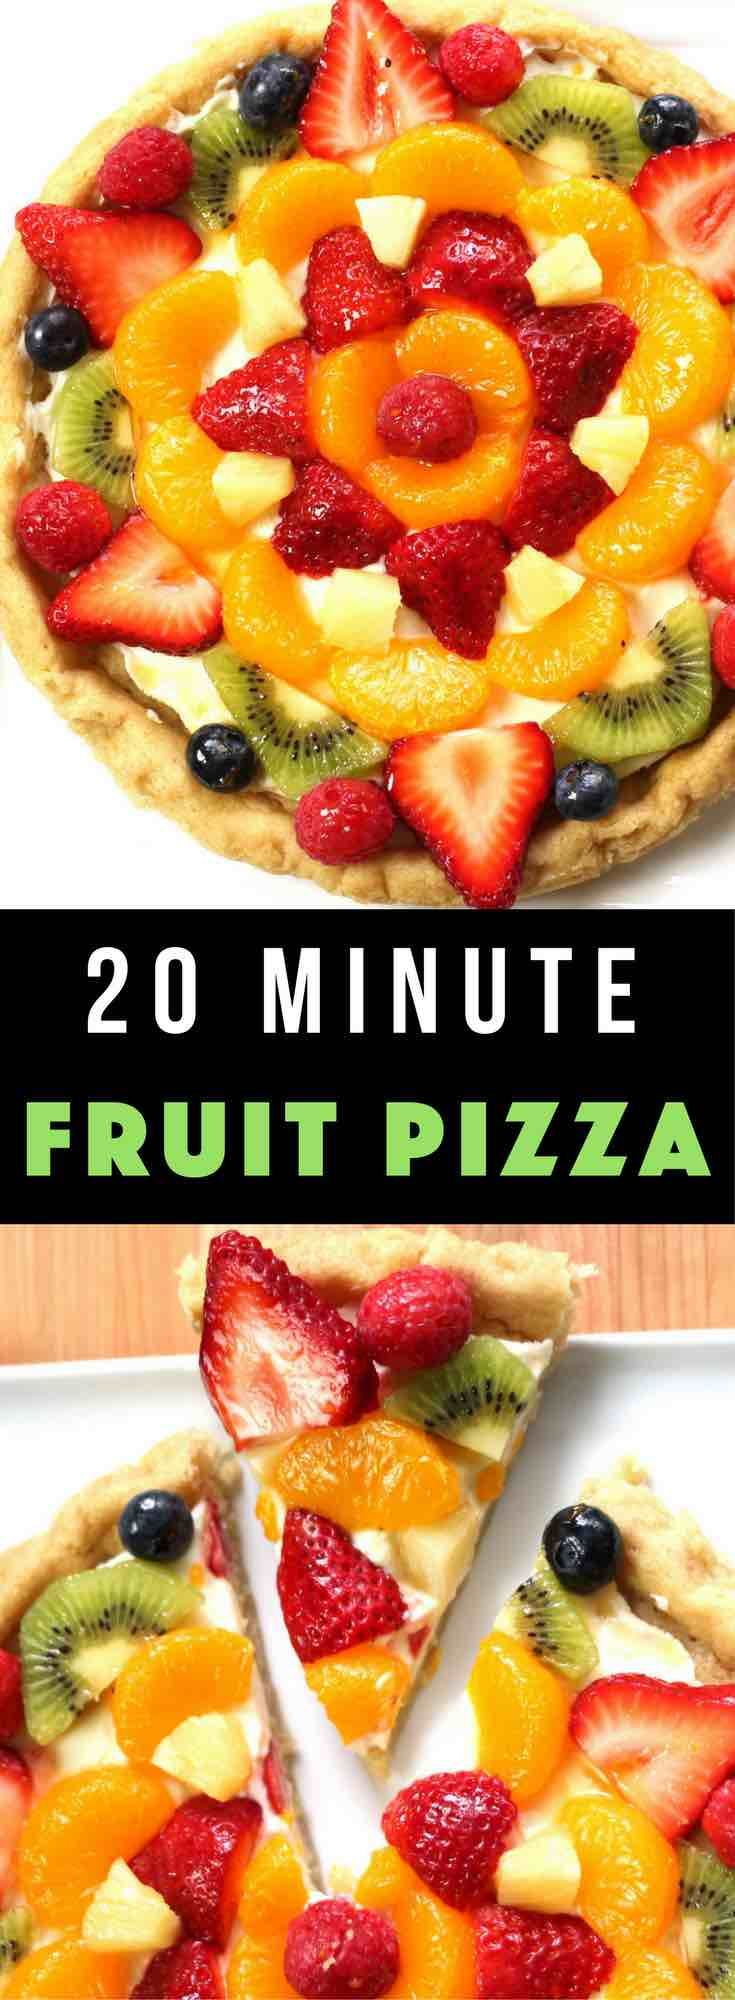 Fruity Pizza - The easiest and most unbelievably beautiful fruit pizza or fruity sugar cookie cake has a soft sugar cookie crust and smooth creamy filling, topped with fresh fruits. All you need is a few simple ingredients: refrigerated sugar cookie dough, cream cheese, sugar, vanilla extract and fruit of your choice! A simple dessert you whole family will be obsessed with. It takes only 20 minutes to make. Perfect for holiday party dessert such as Easter, Mother's Day, Father's Day or…